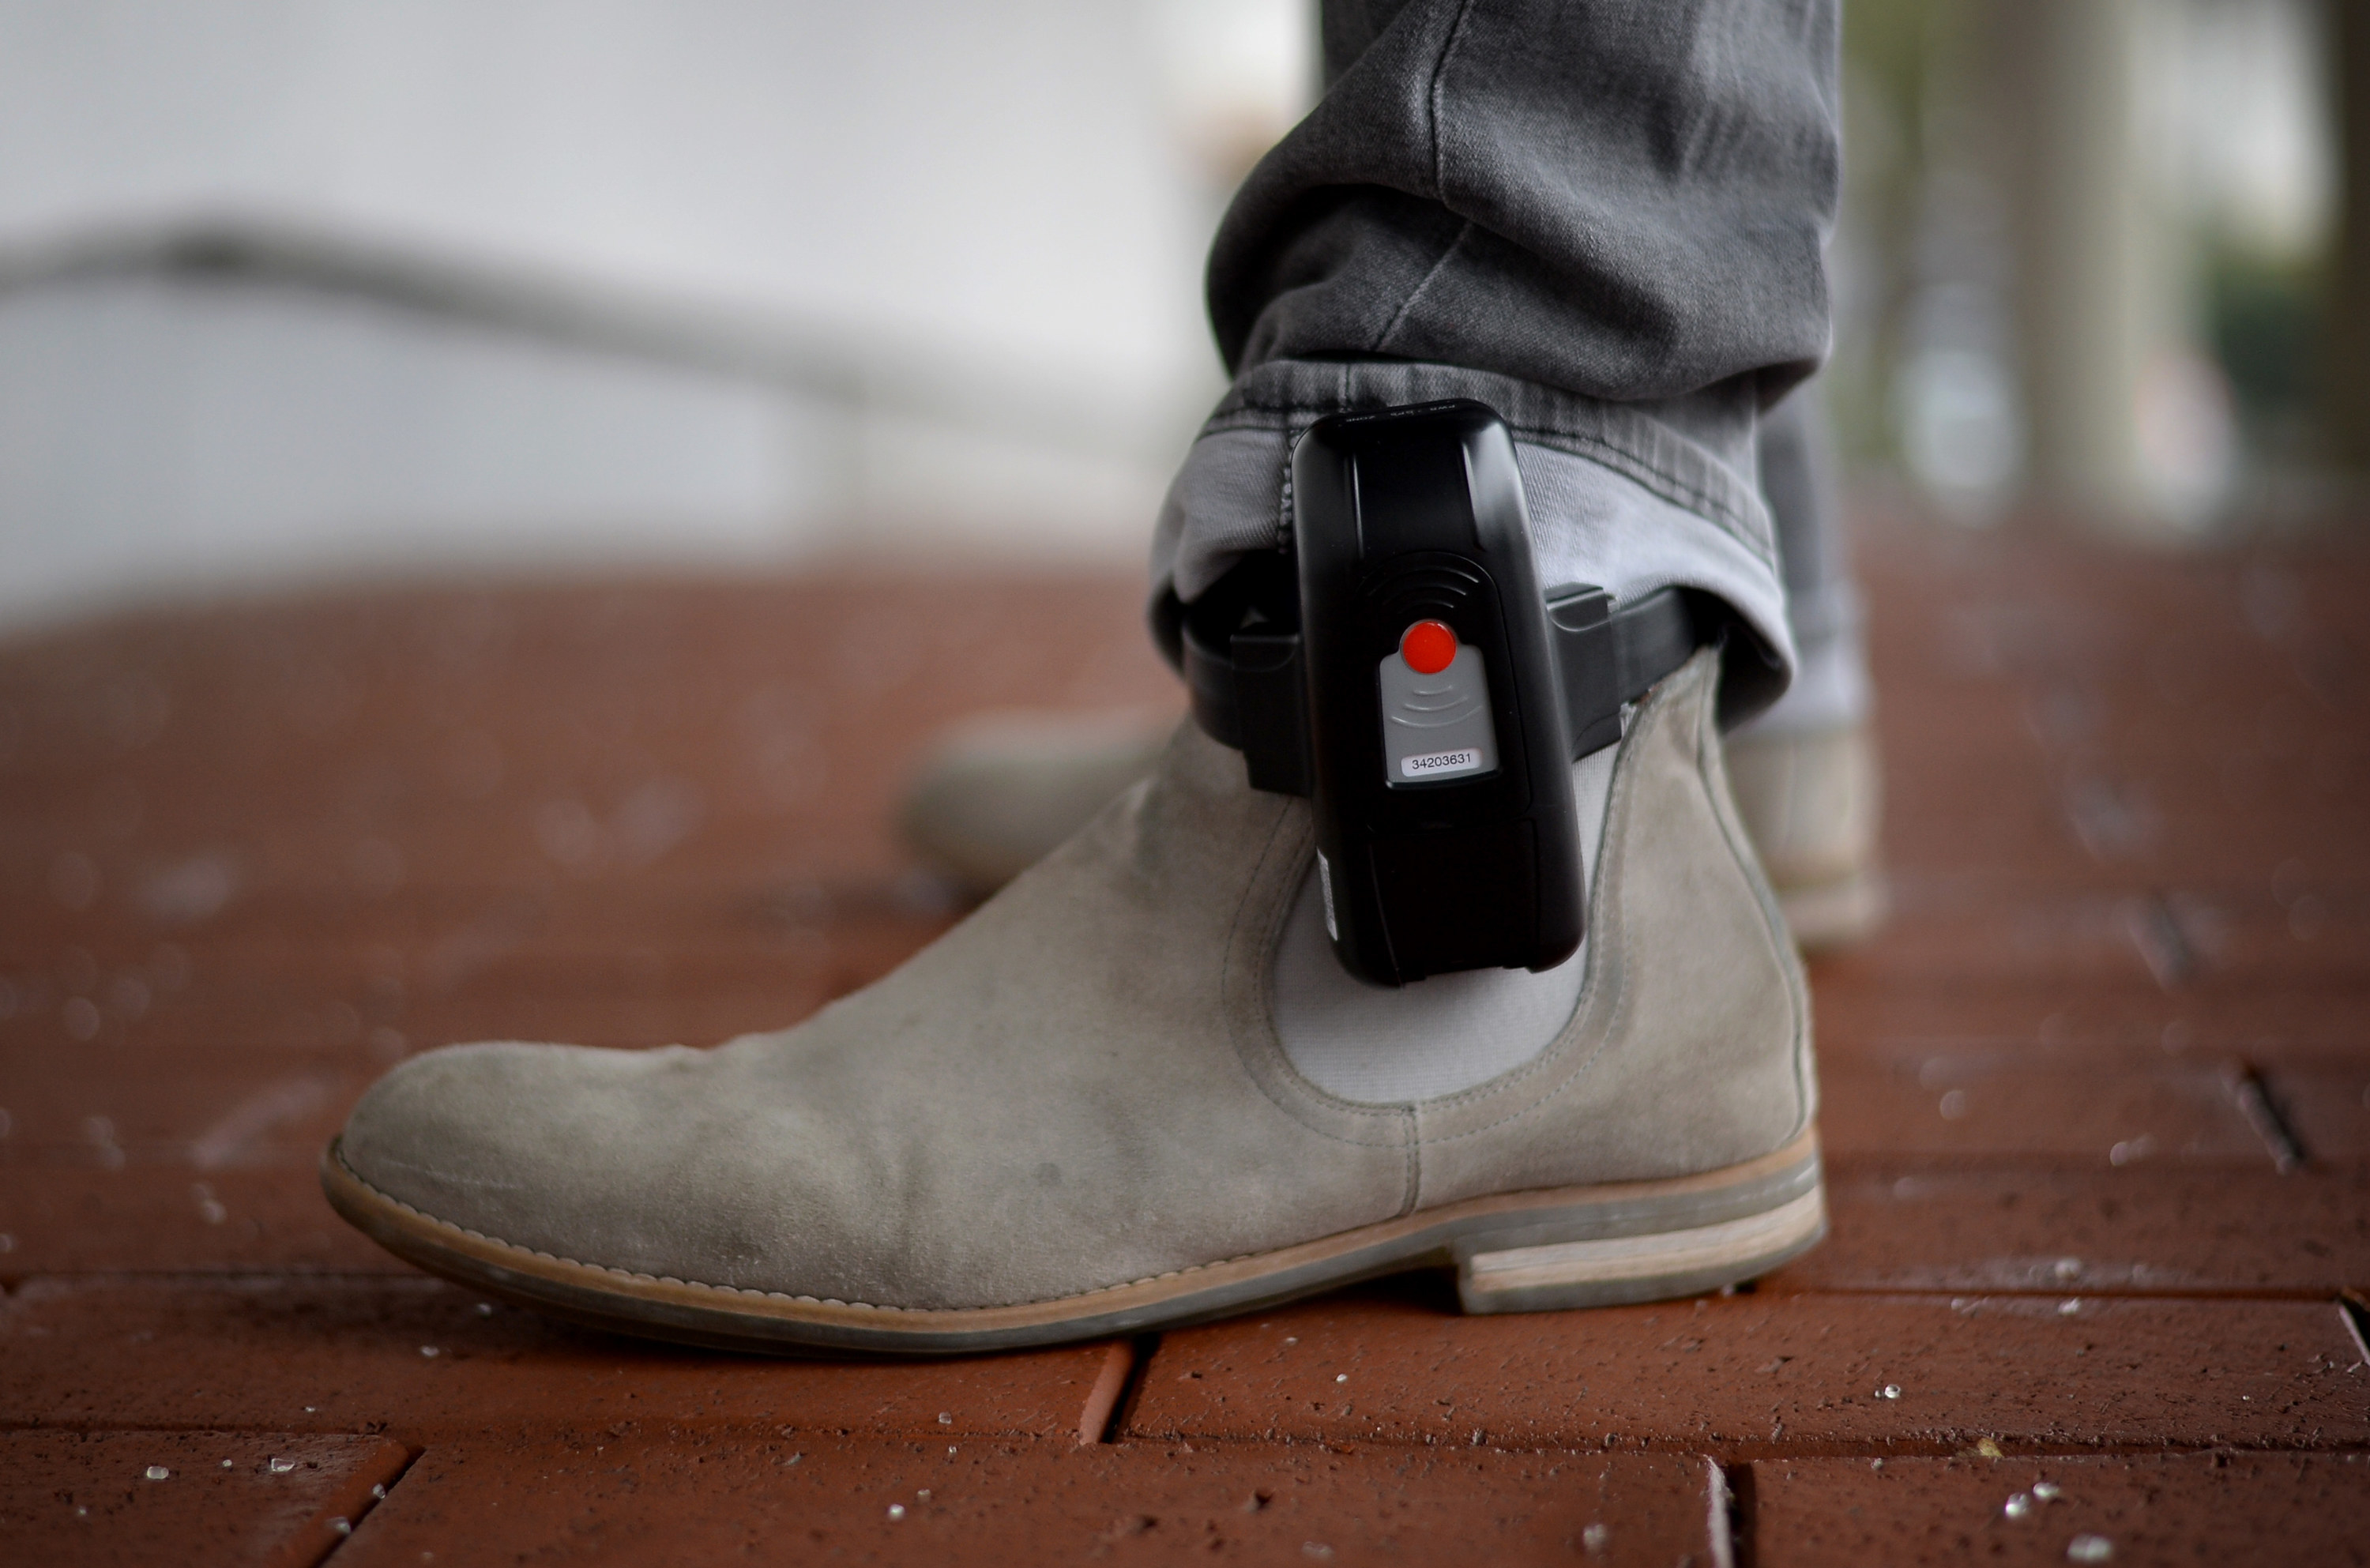 An ankle monitor on someone's foot